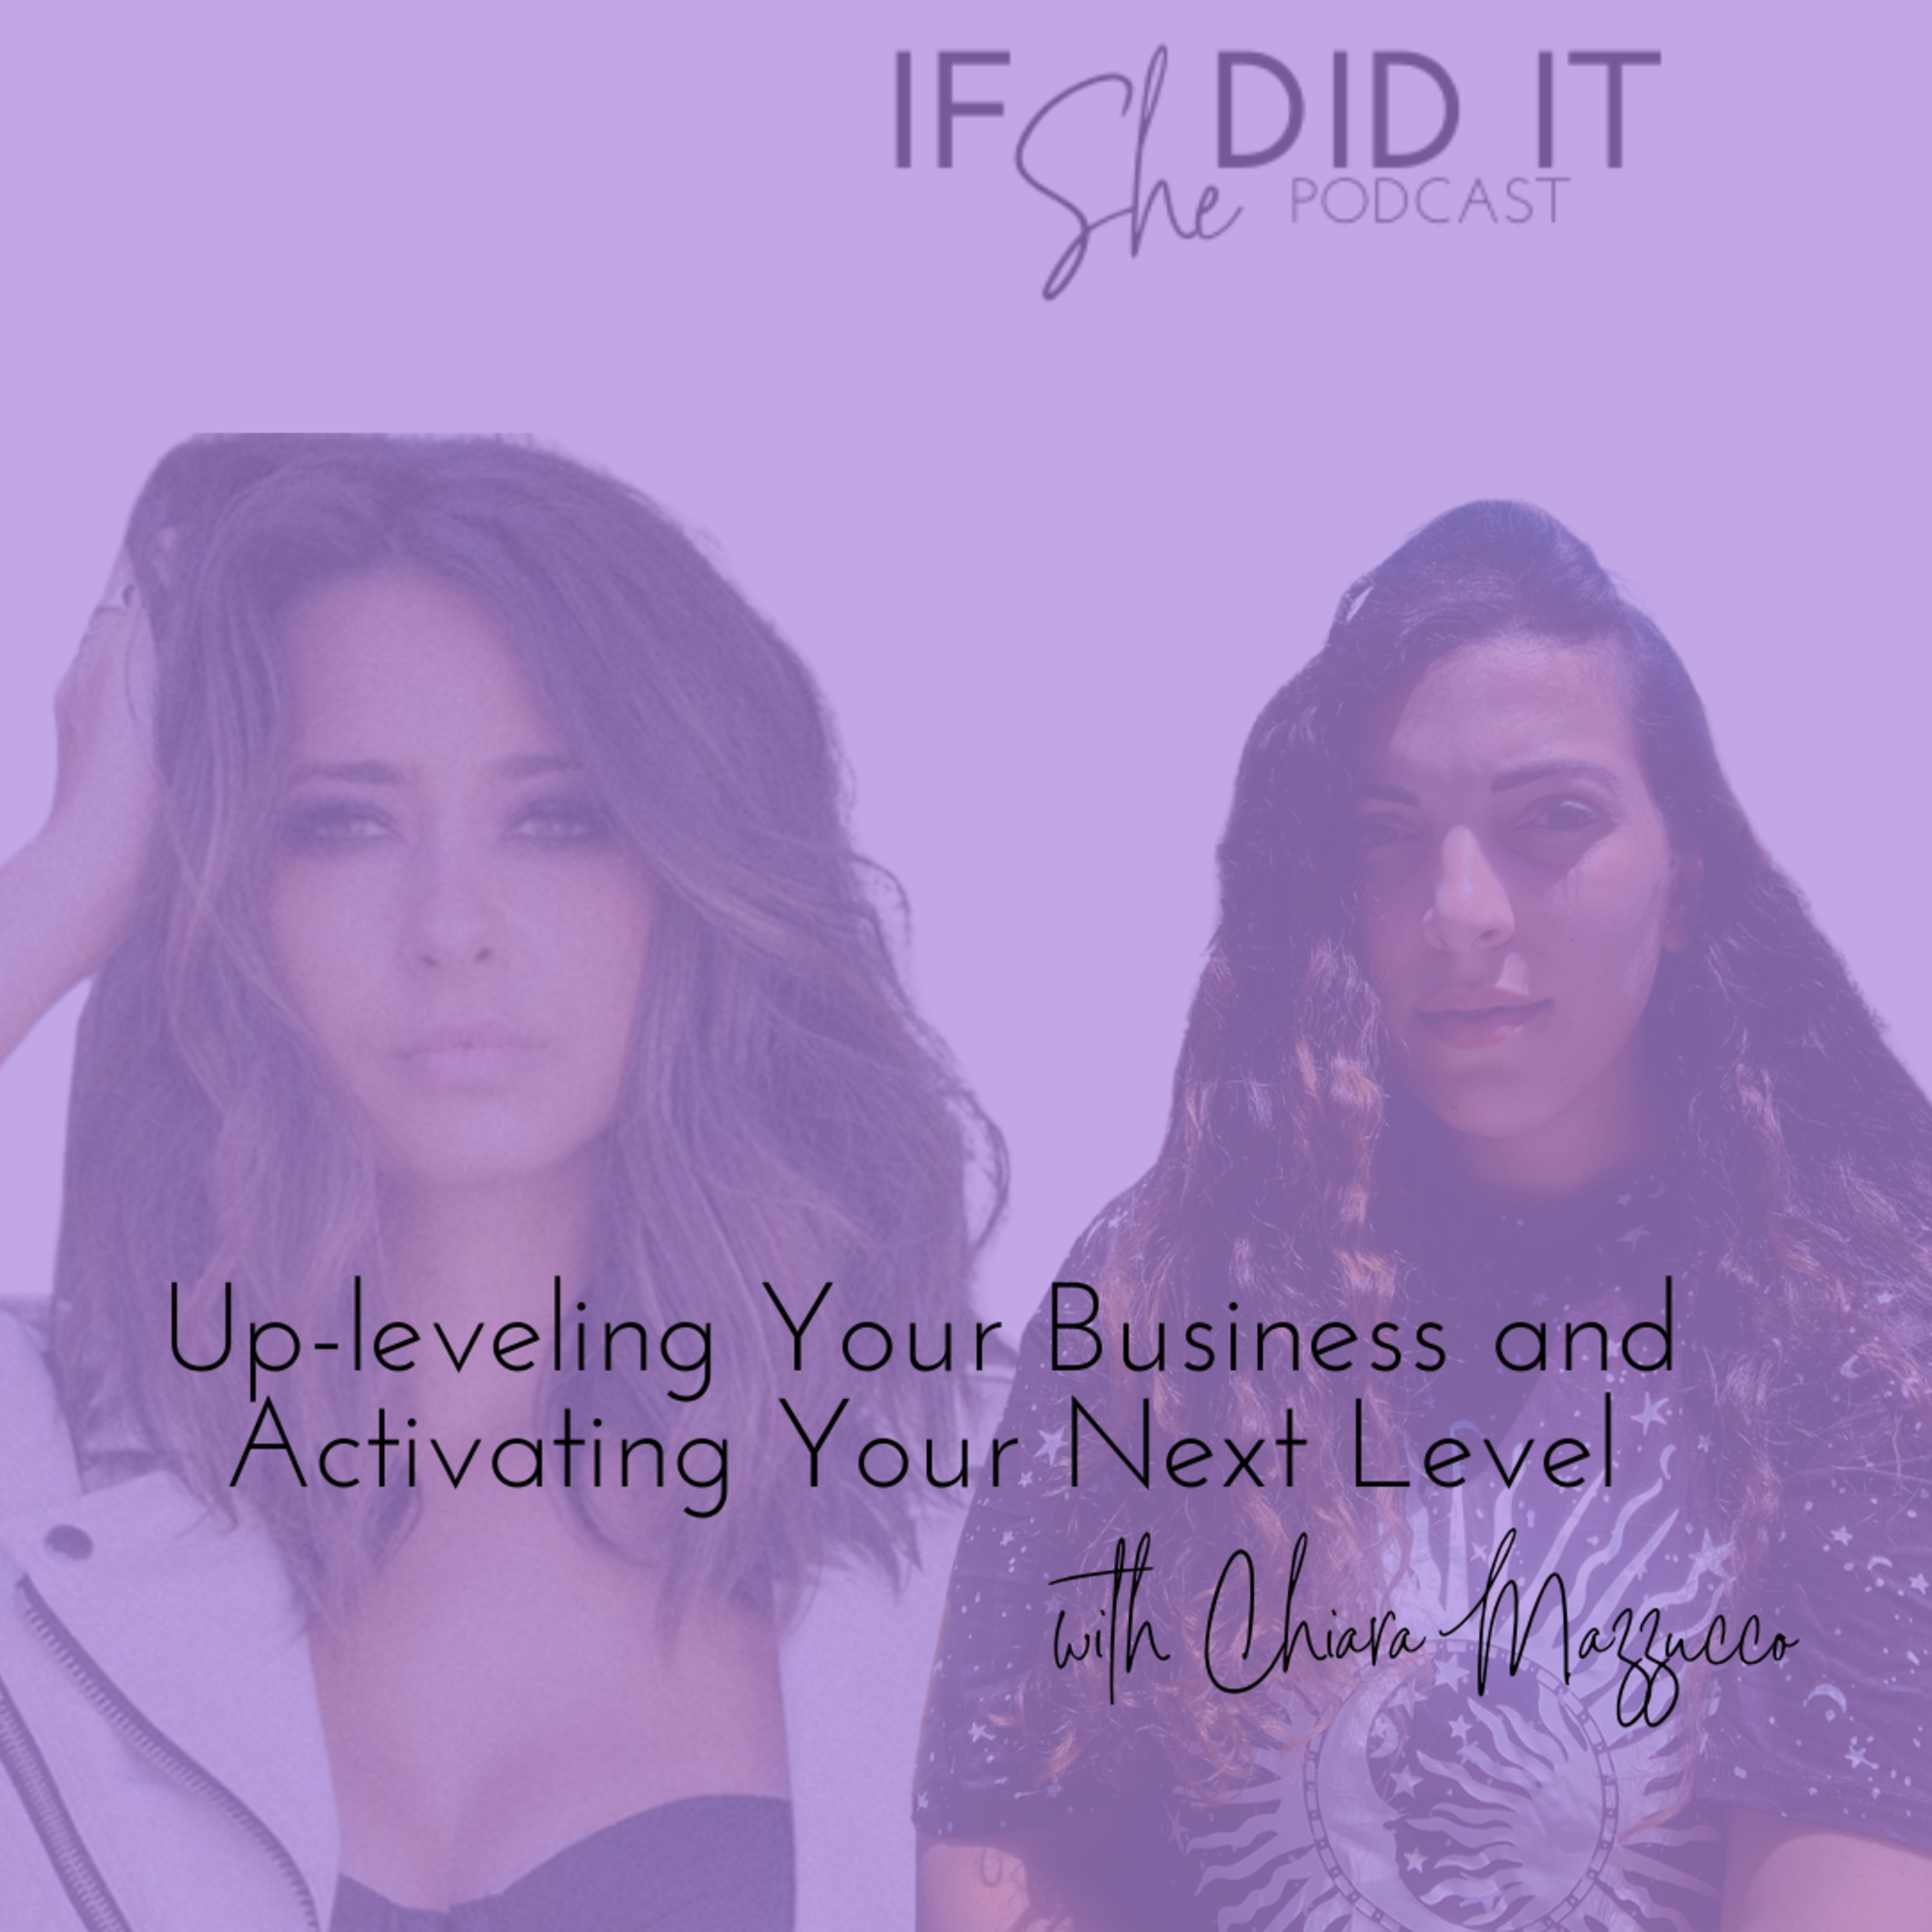 Upleveling Your Business and Activating Your Next Level with Chiara Mazzucco